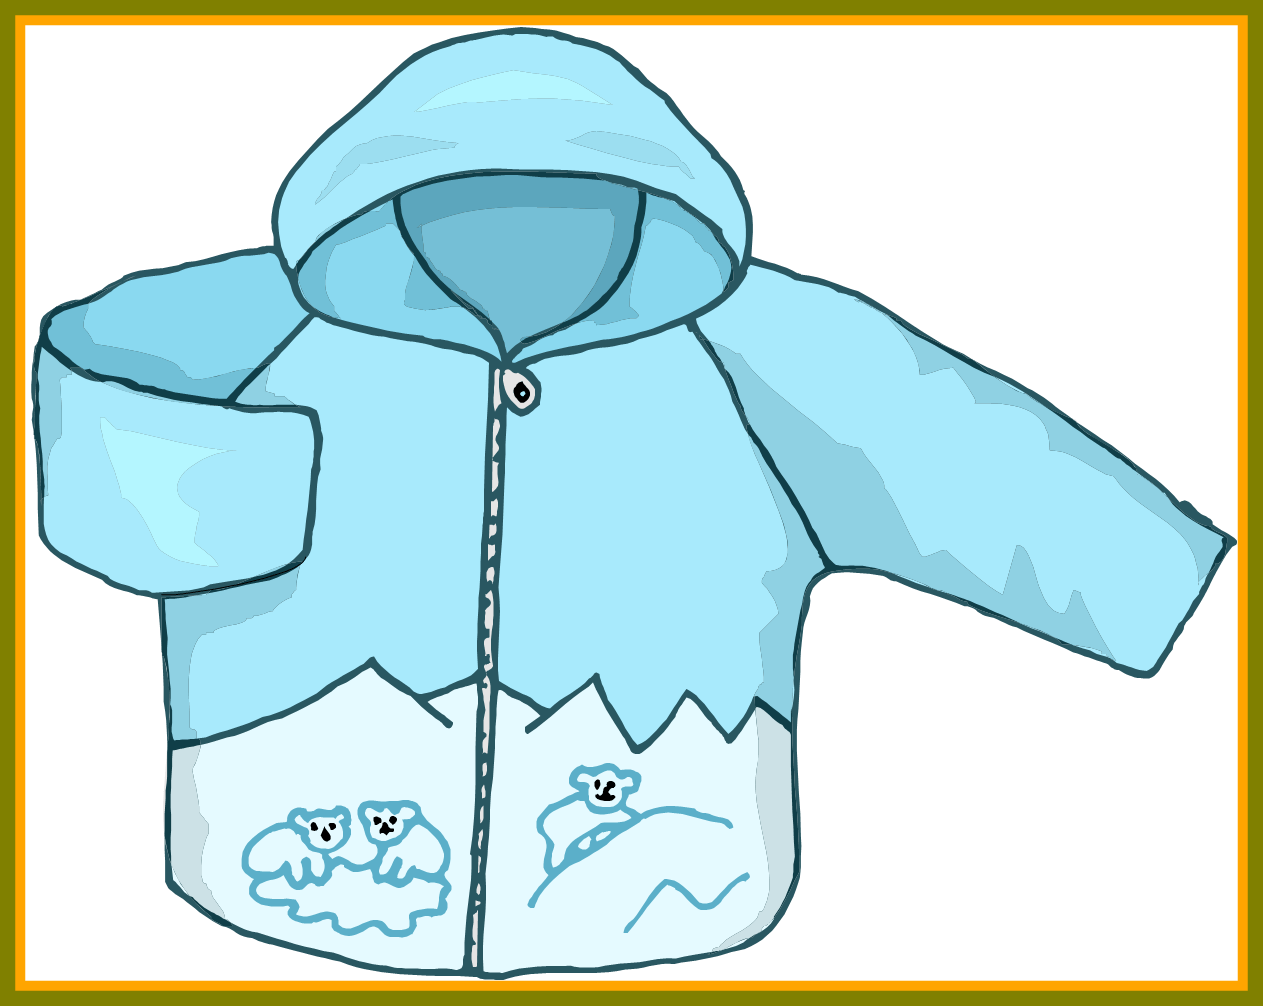 HD Amazing Hoodie Jacket Zipper Sweater Png Picture Ⓒ.